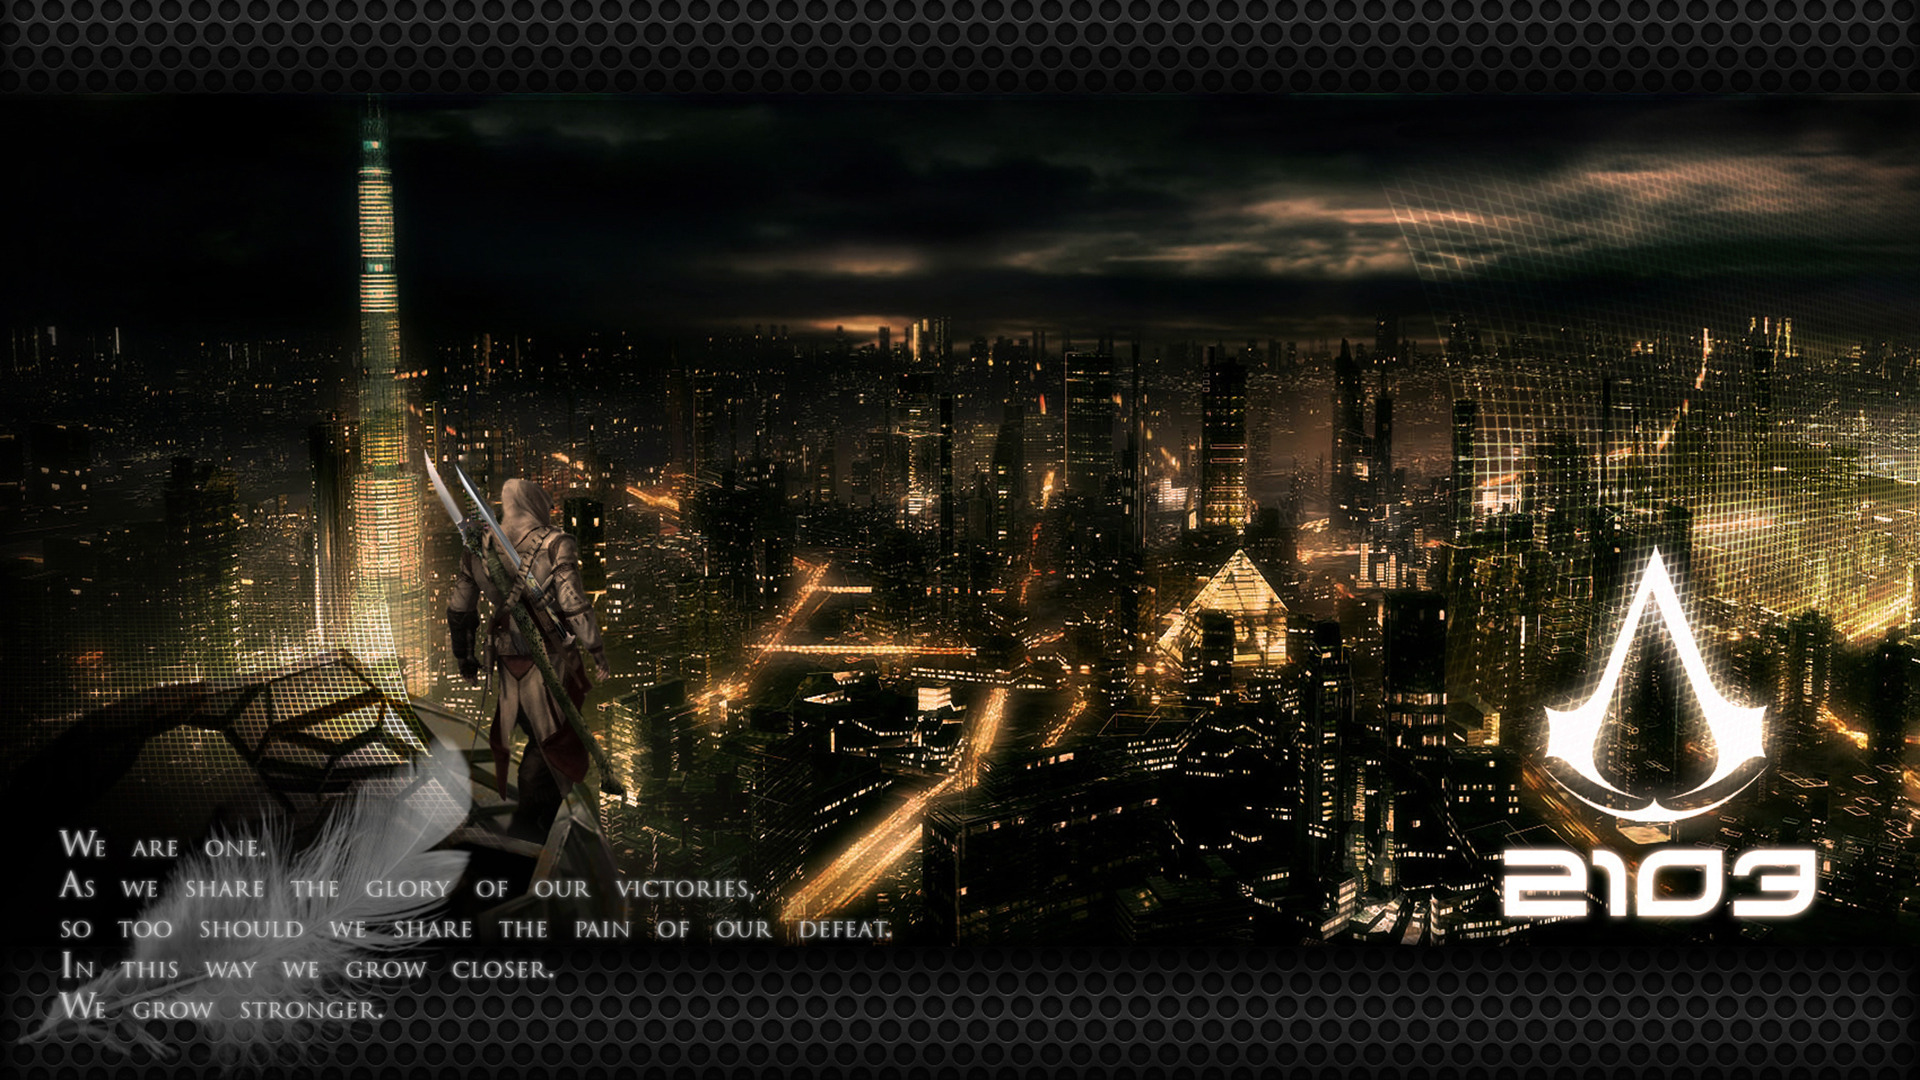 assassins creed wallpapers 1920x1080   DriverLayer Search 1920x1080